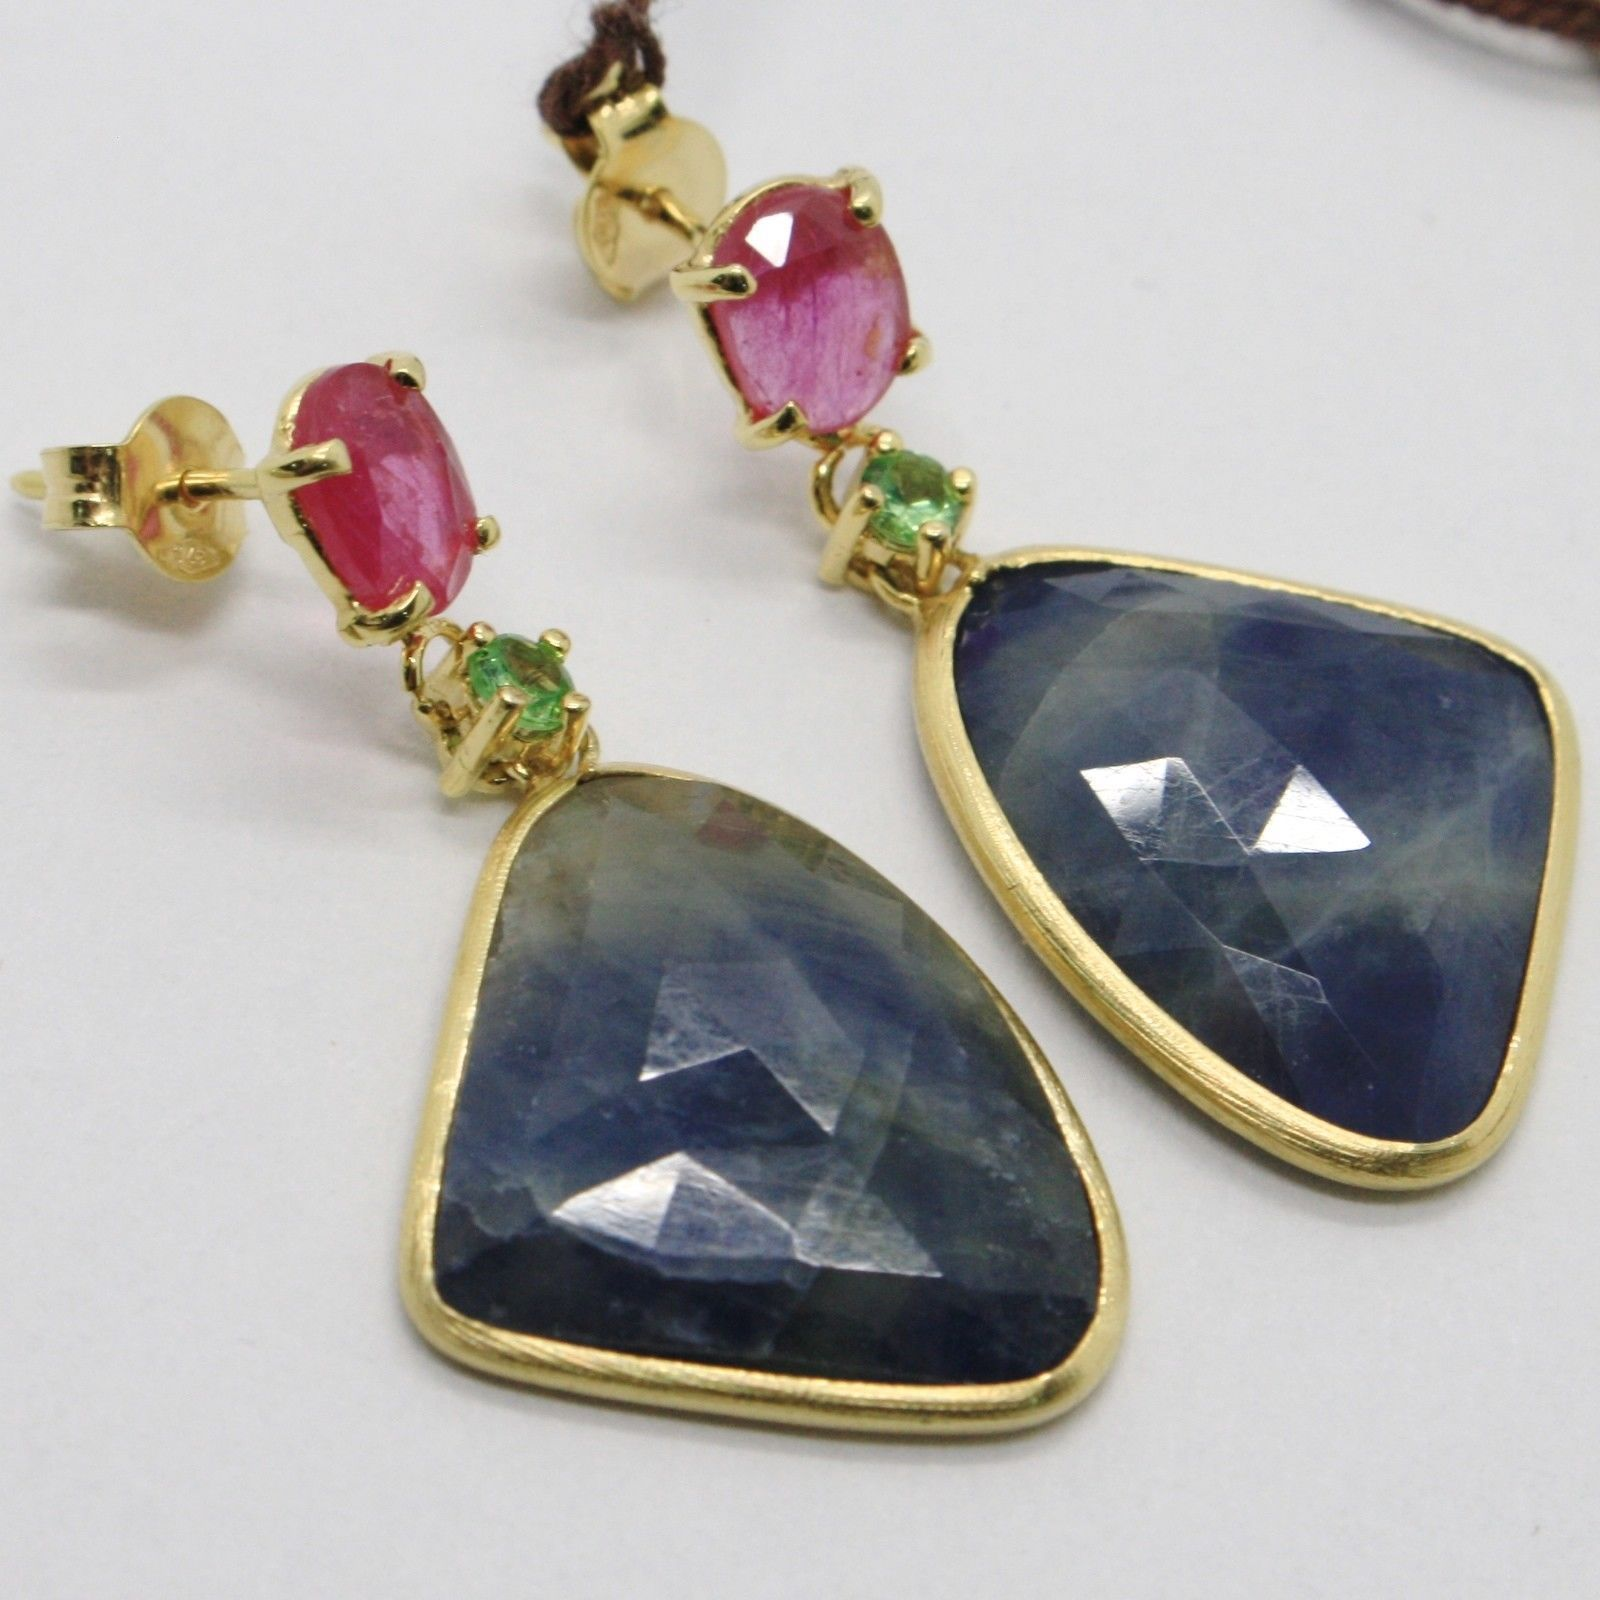 YELLOW GOLD EARRINGS 9K WITH SAPPHIRES BLUE AND PINK AND PERIDOT MADE IN ITALY